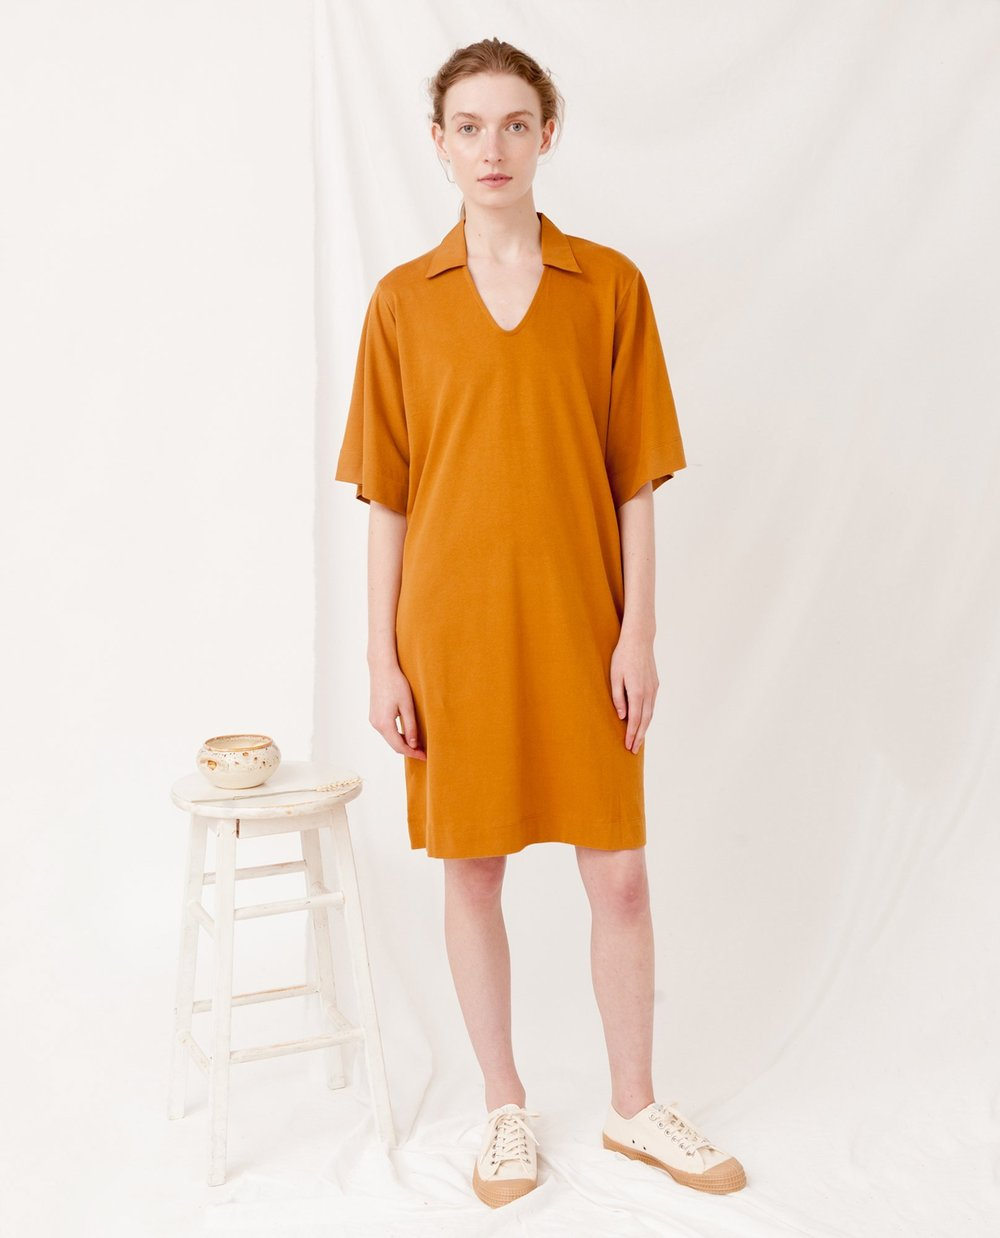 Luana-Beaumont-Organic-Organic-Cotton-Dress-In-Rust-1.jpg